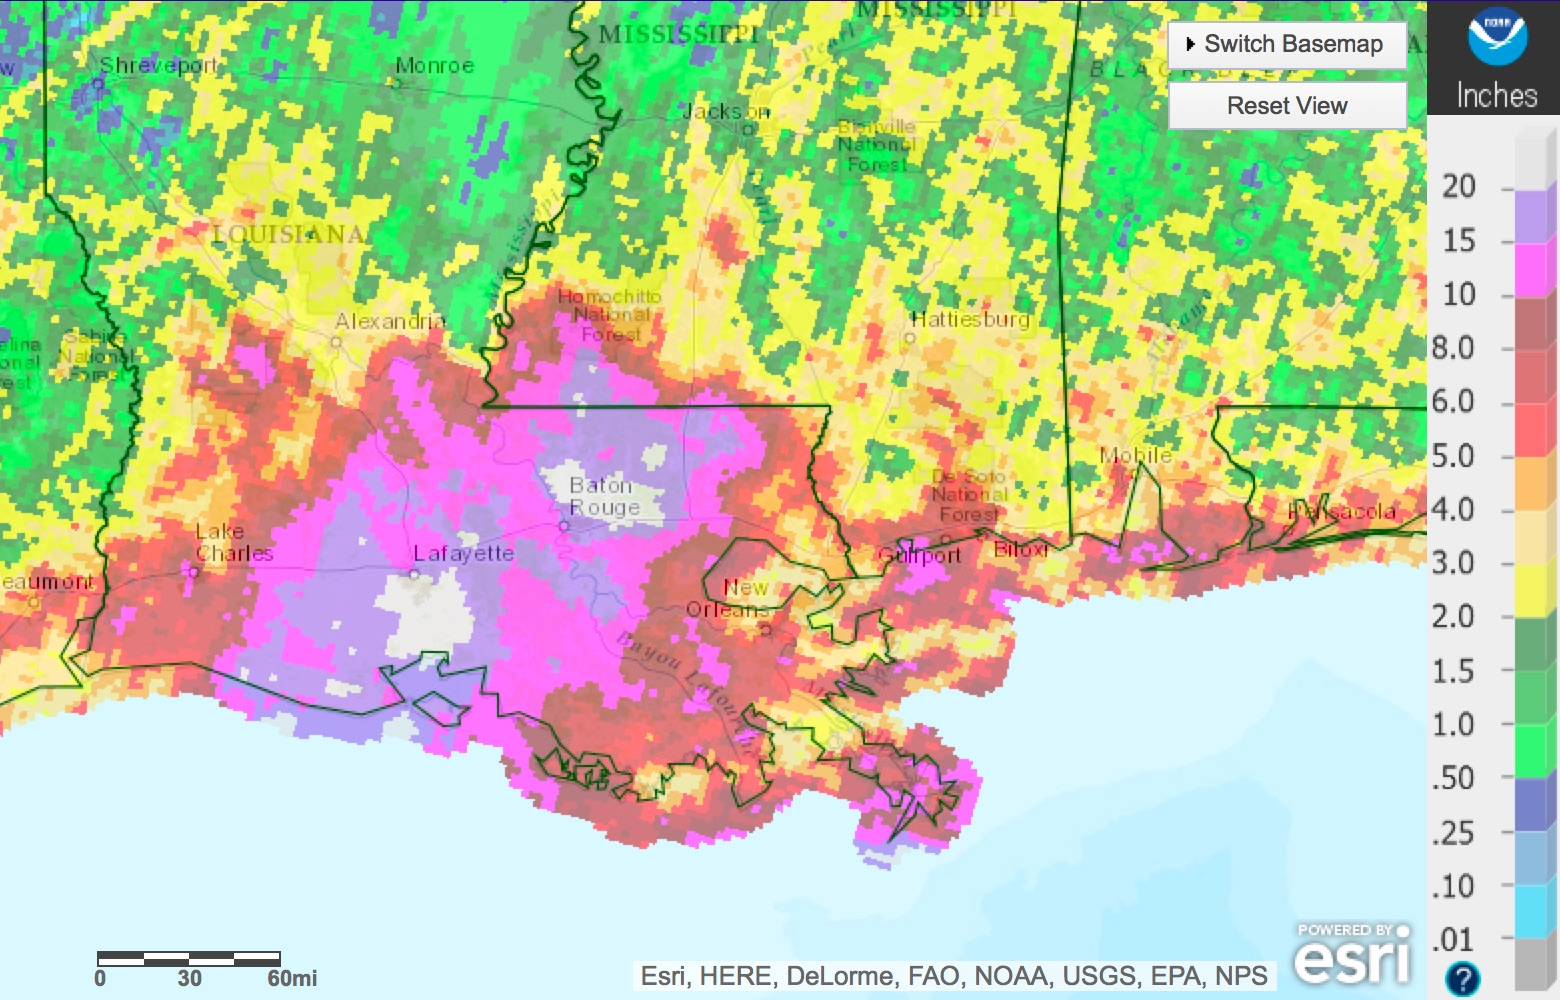 Rainfall totals during the storm.